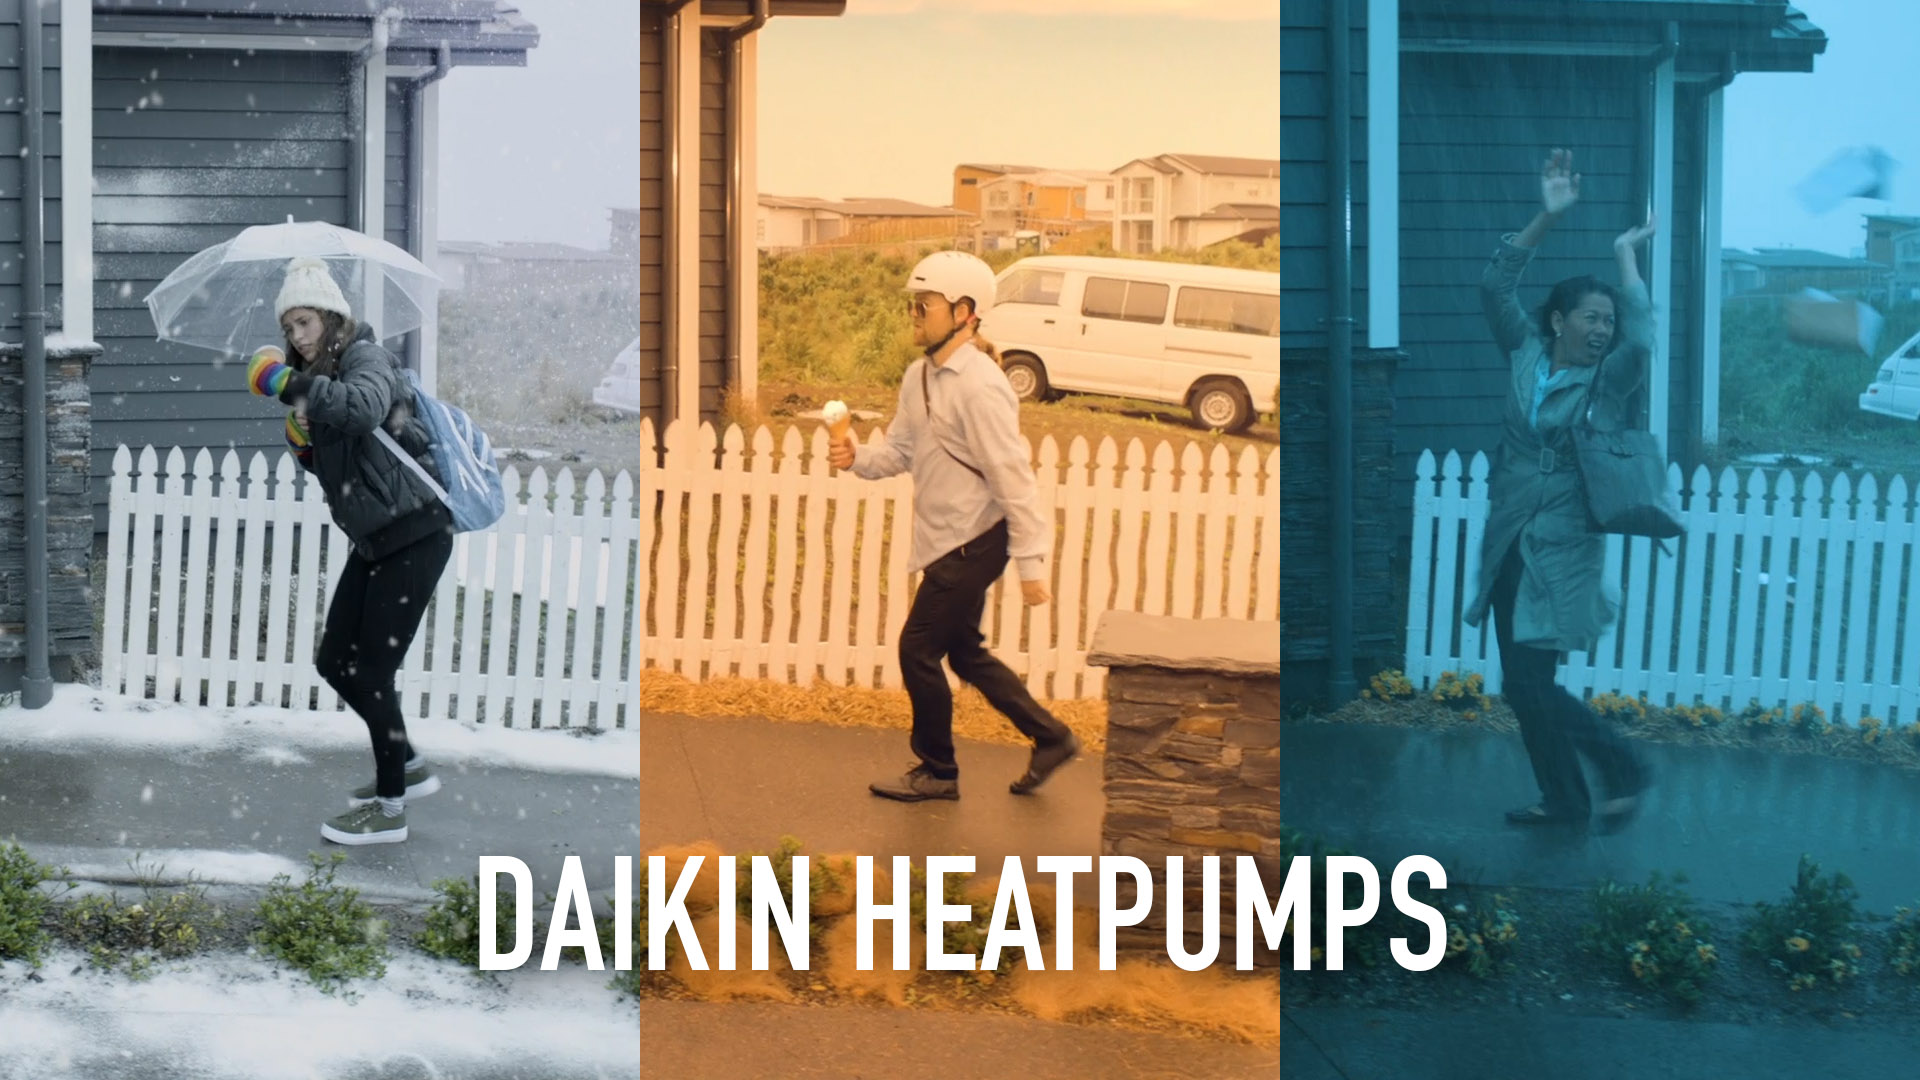 Daikin Heatpumps